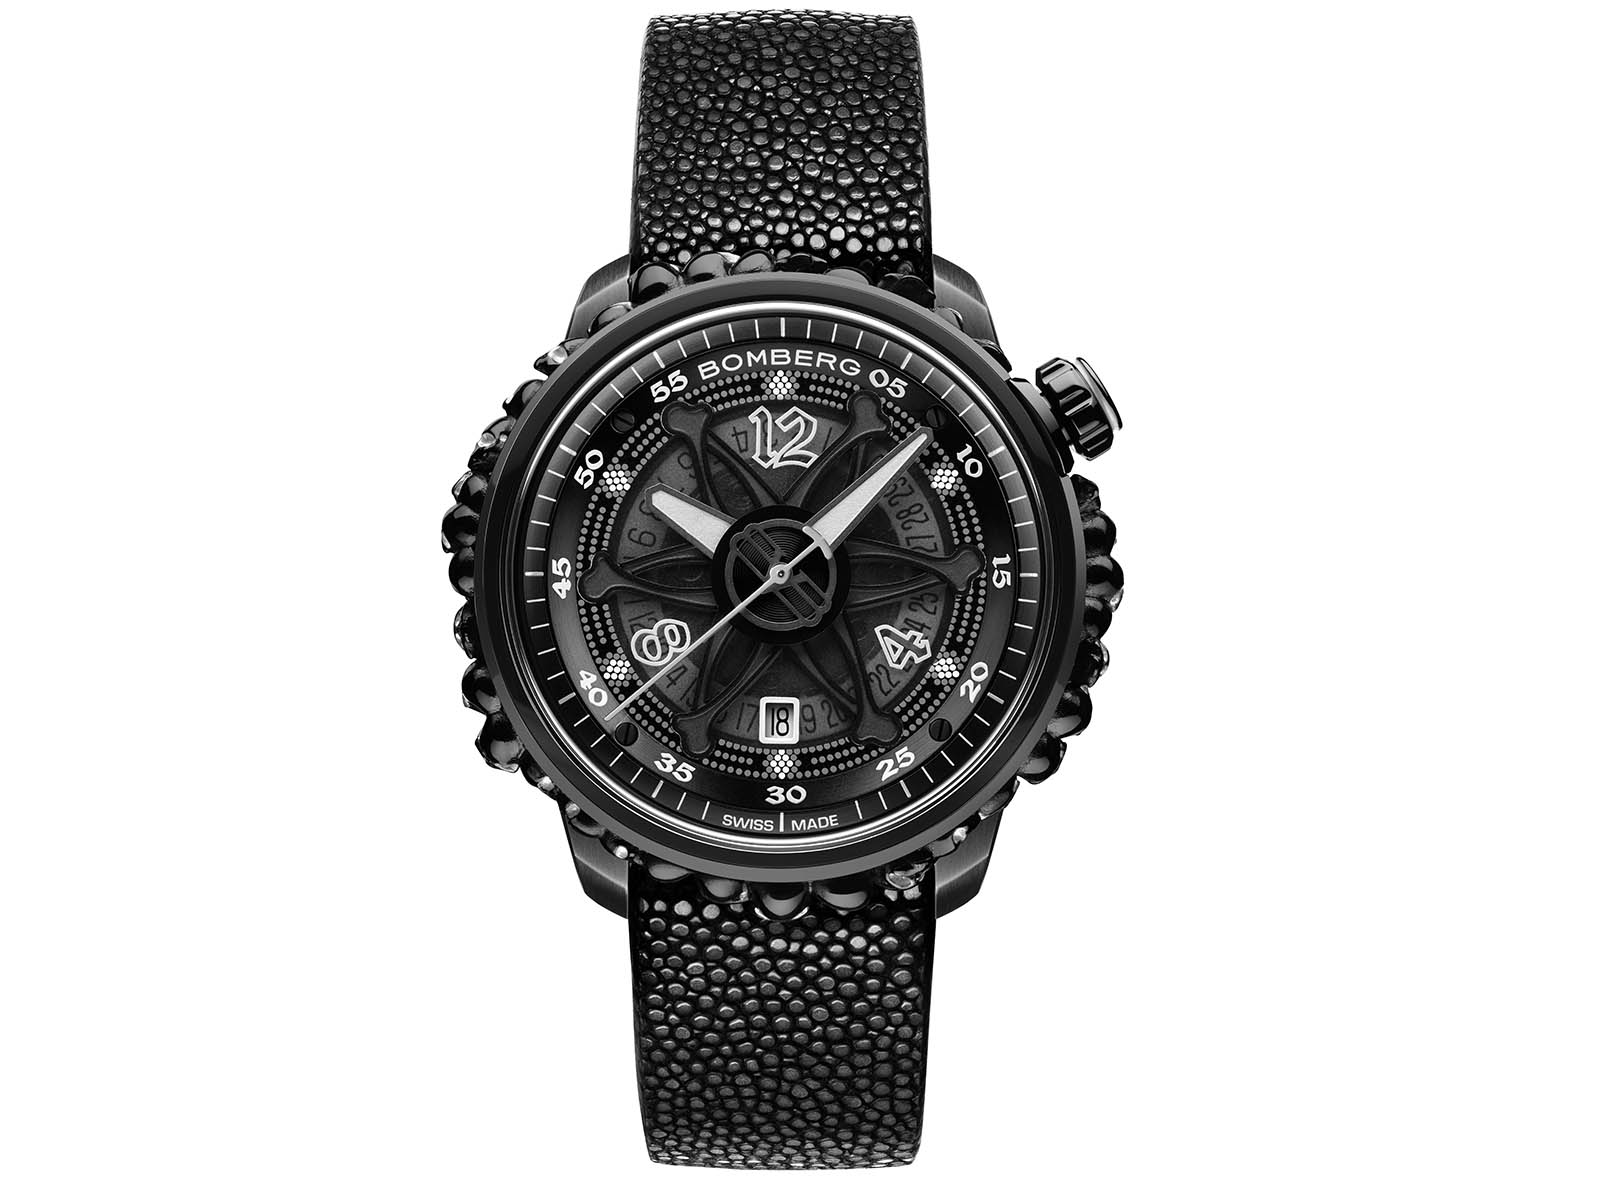 ct43apba-25-1-11-bomberg-gothic-bb-01-automatic-black-catacomb-limited-edition-5.jpg